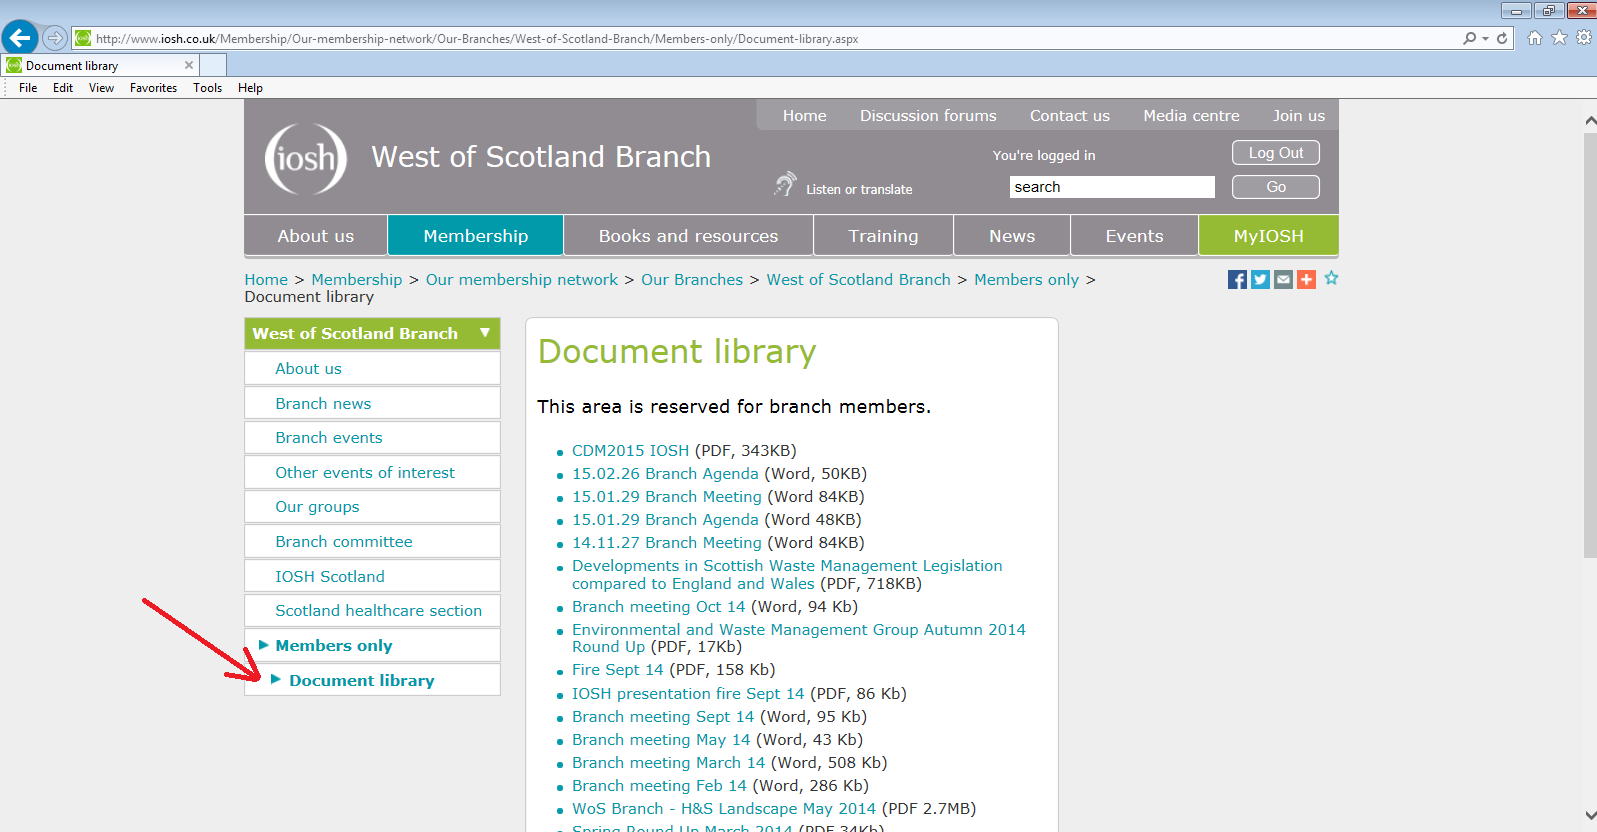 Document library - West of Scotland